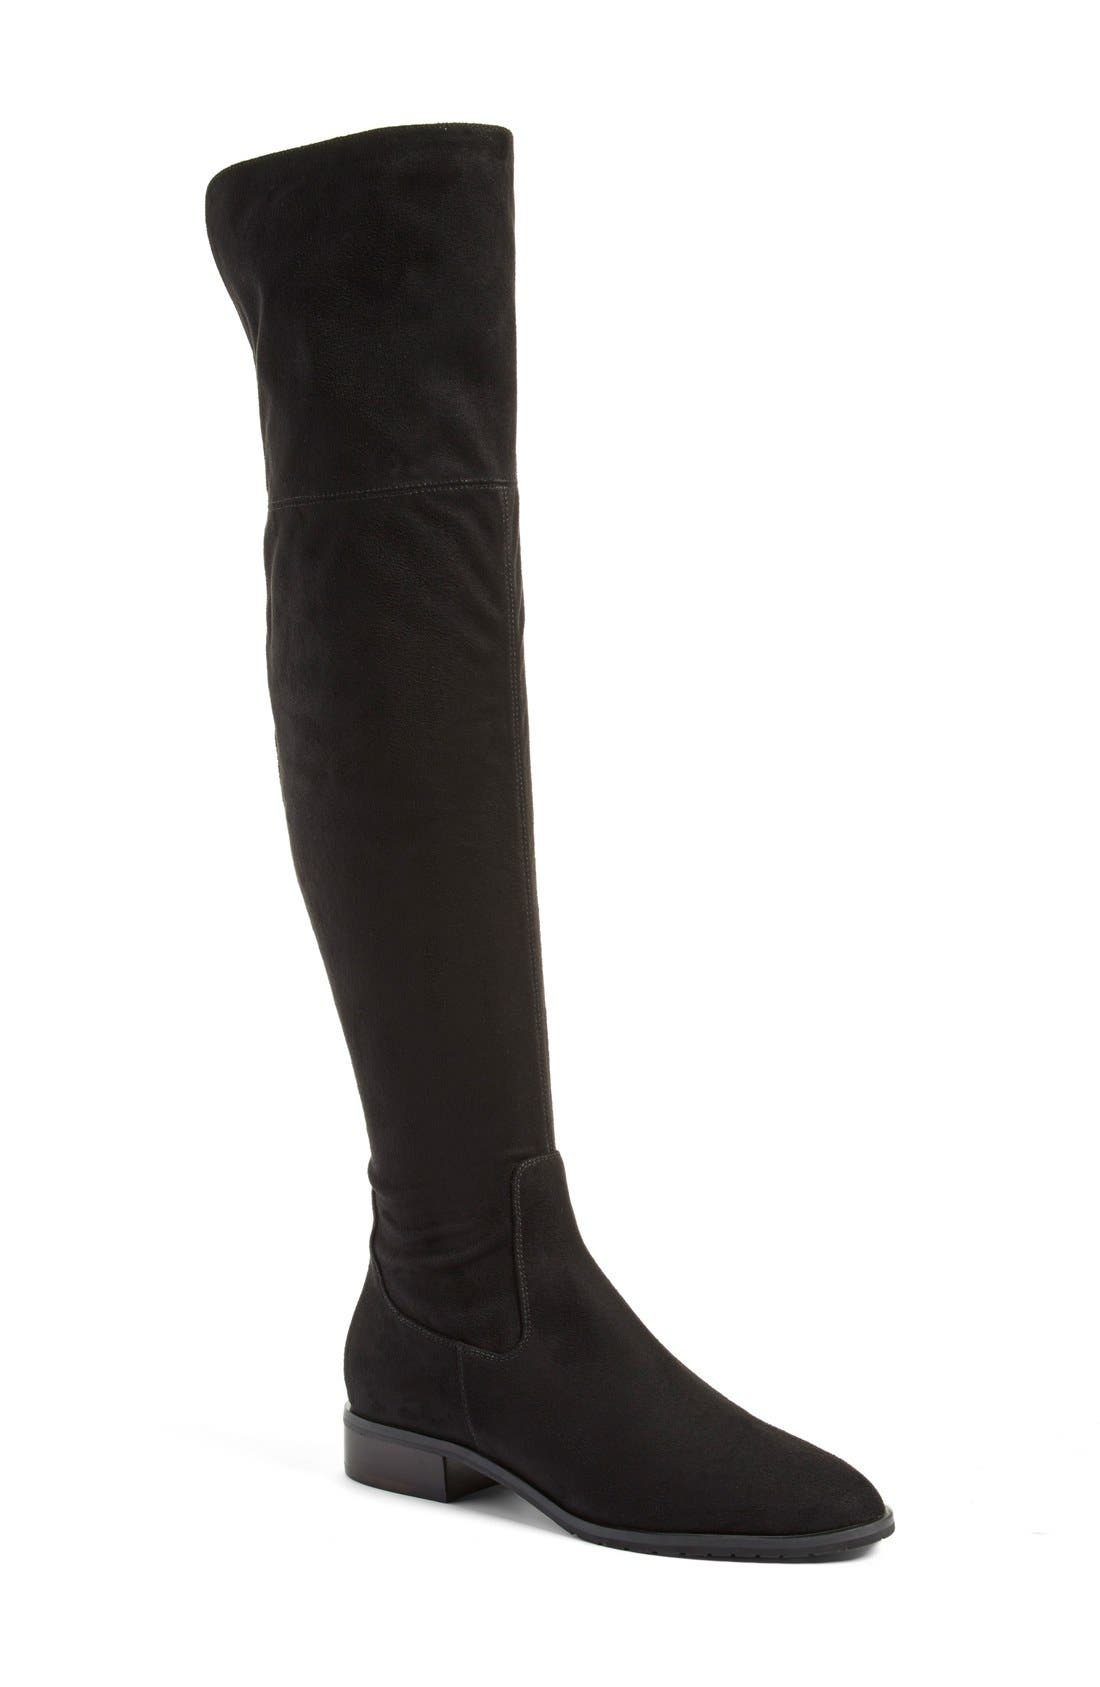 IVANKA TRUMP, 'Luci' Over the Knee Boot, Main thumbnail 1, color, 001